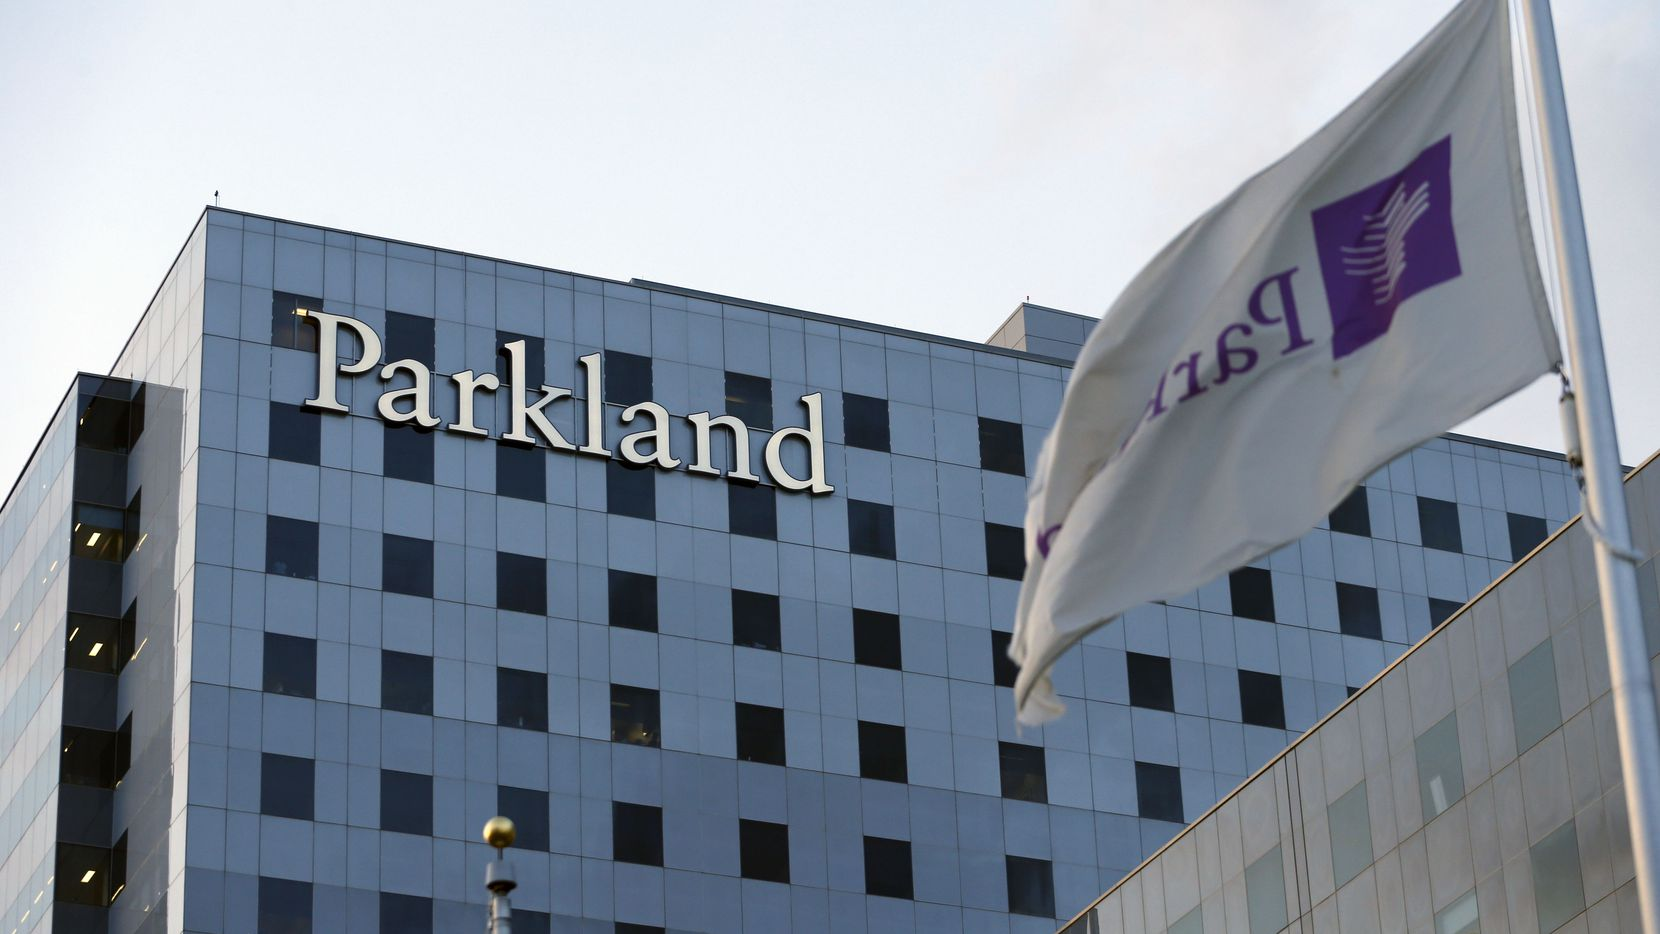 Parkland Hospital's $1.3 billion campus opened in 2015 northwest of downtown Dallas.